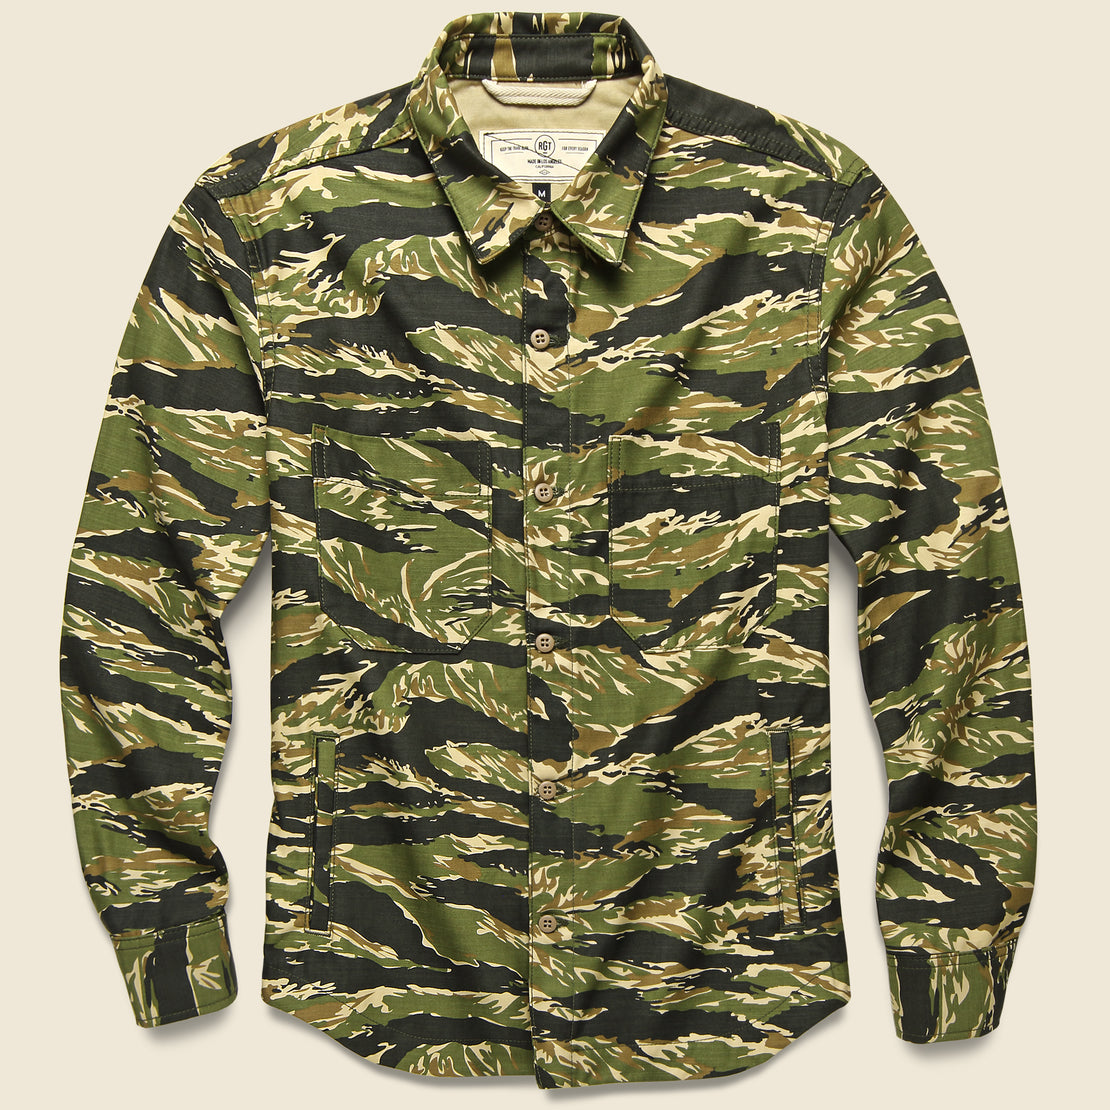 Rogue Territory Patrol Work Shirt - Tiger Camo